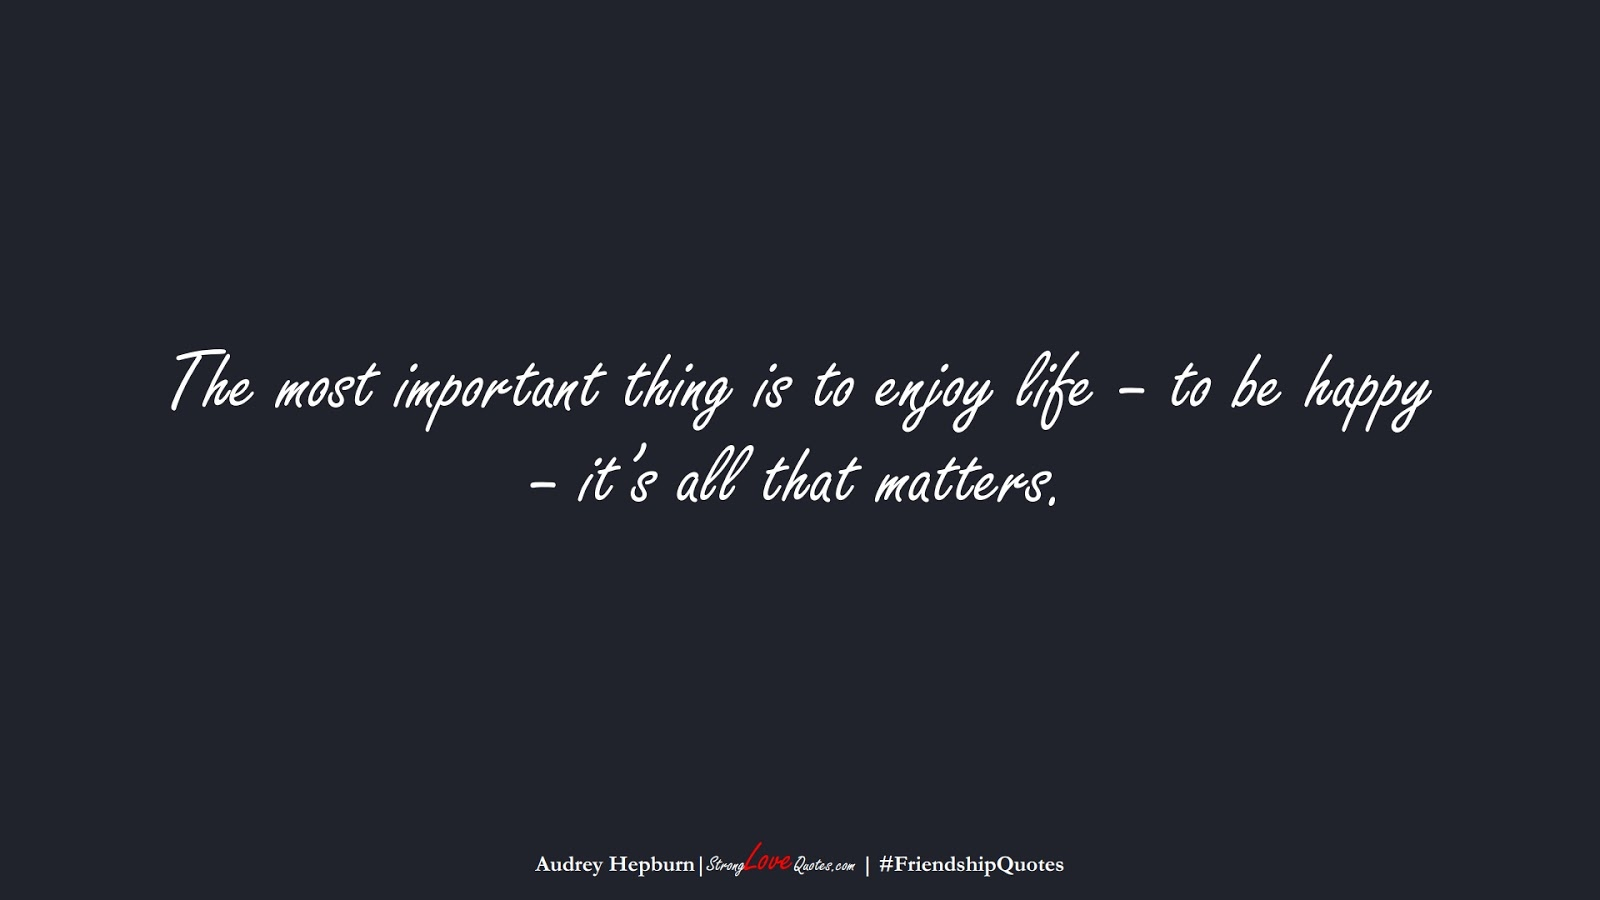 The most important thing is to enjoy life – to be happy – it's all that matters. (Audrey Hepburn);  #FriendshipQuotes